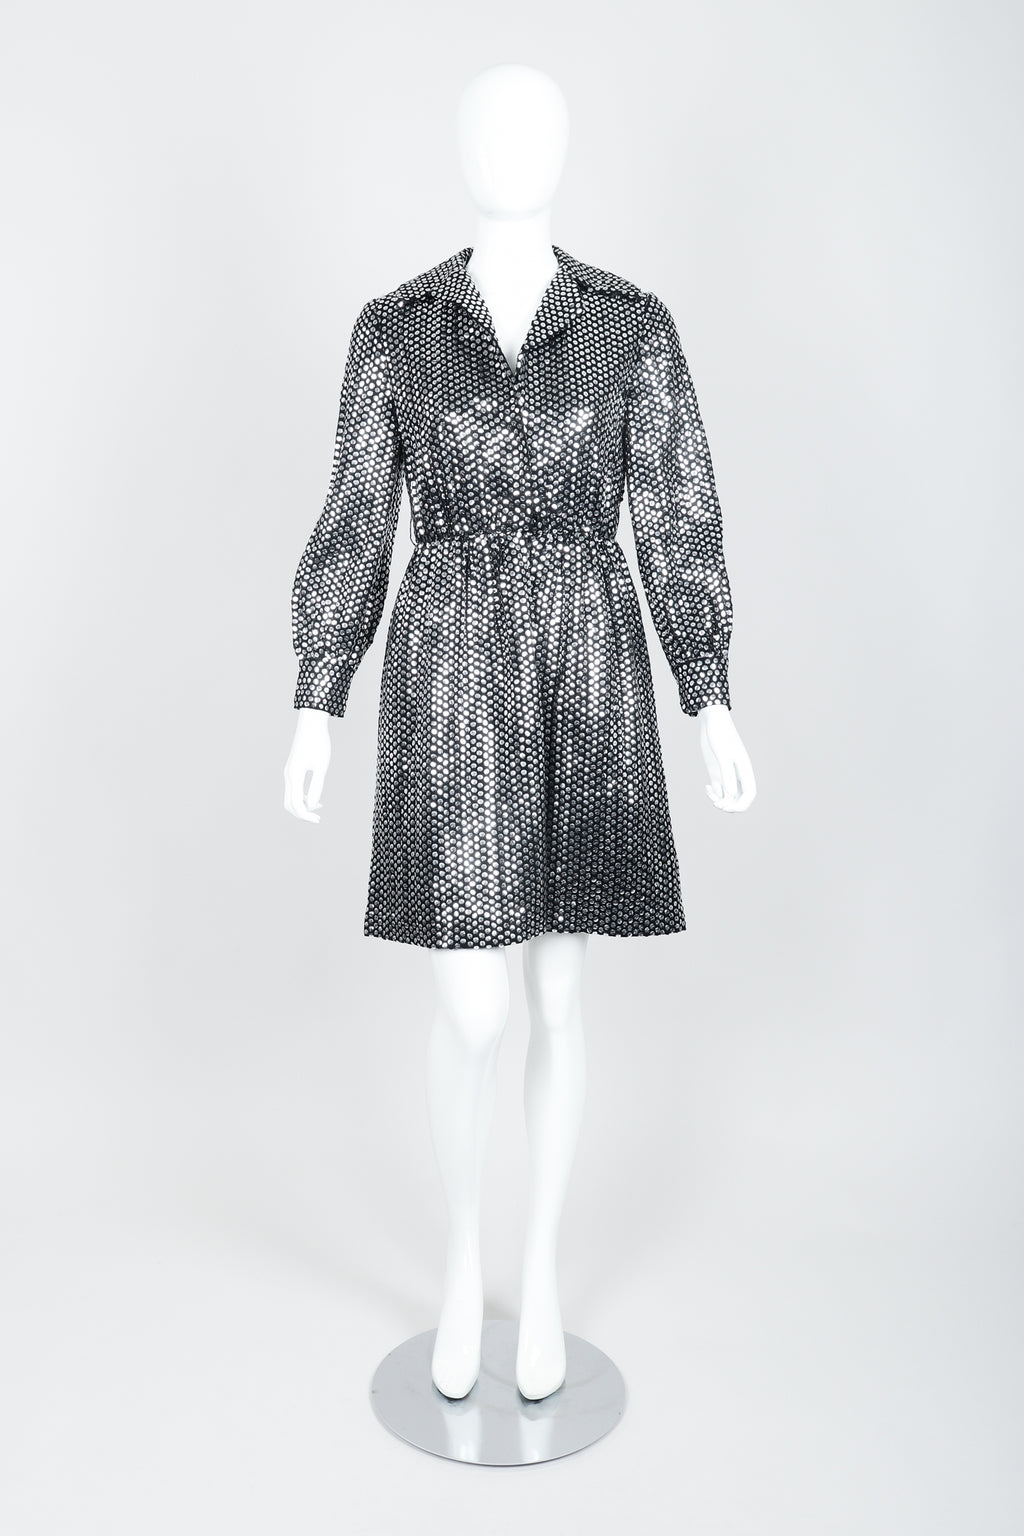 Vintage Joan Leslie by Kasper Sequin Mirror Shirtwaist Dress on Mannequin front at Recess